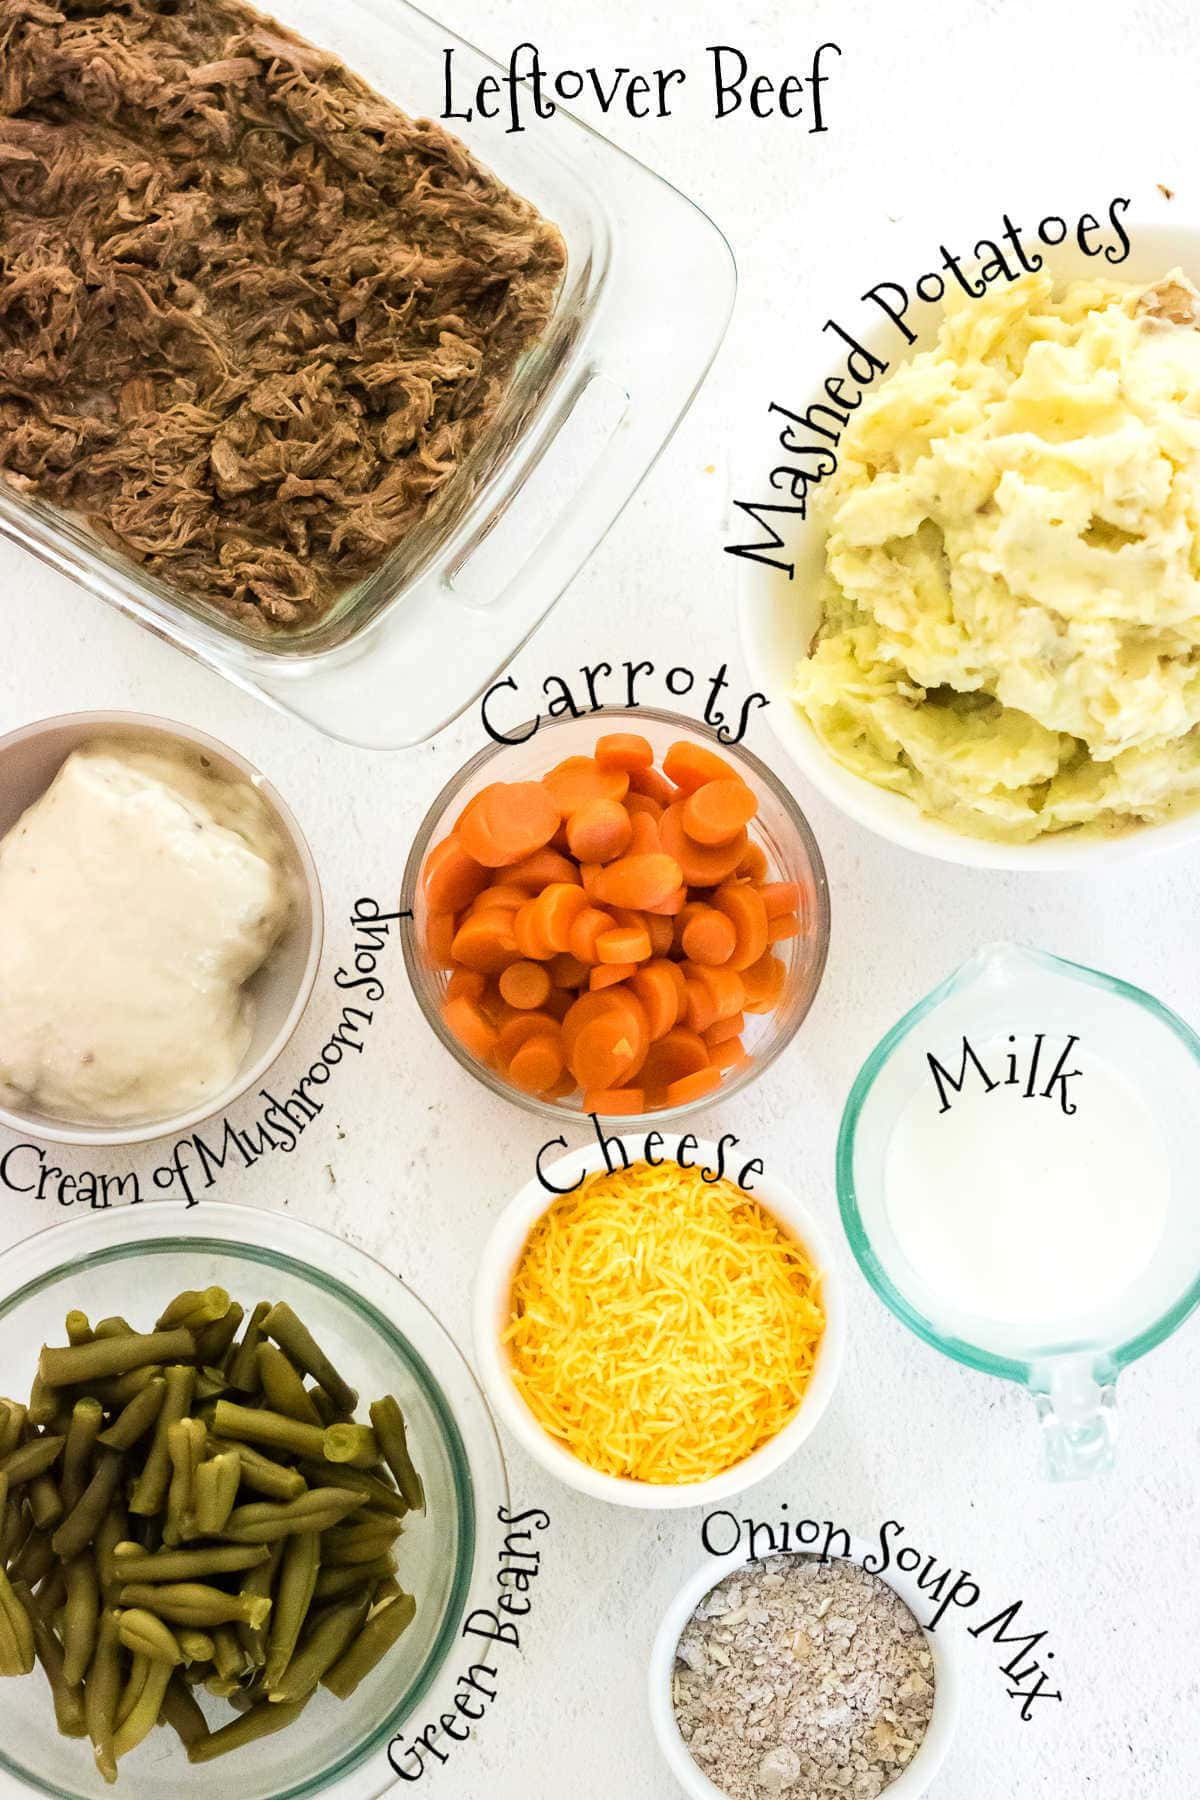 labeled ingredients for shepherd's pie